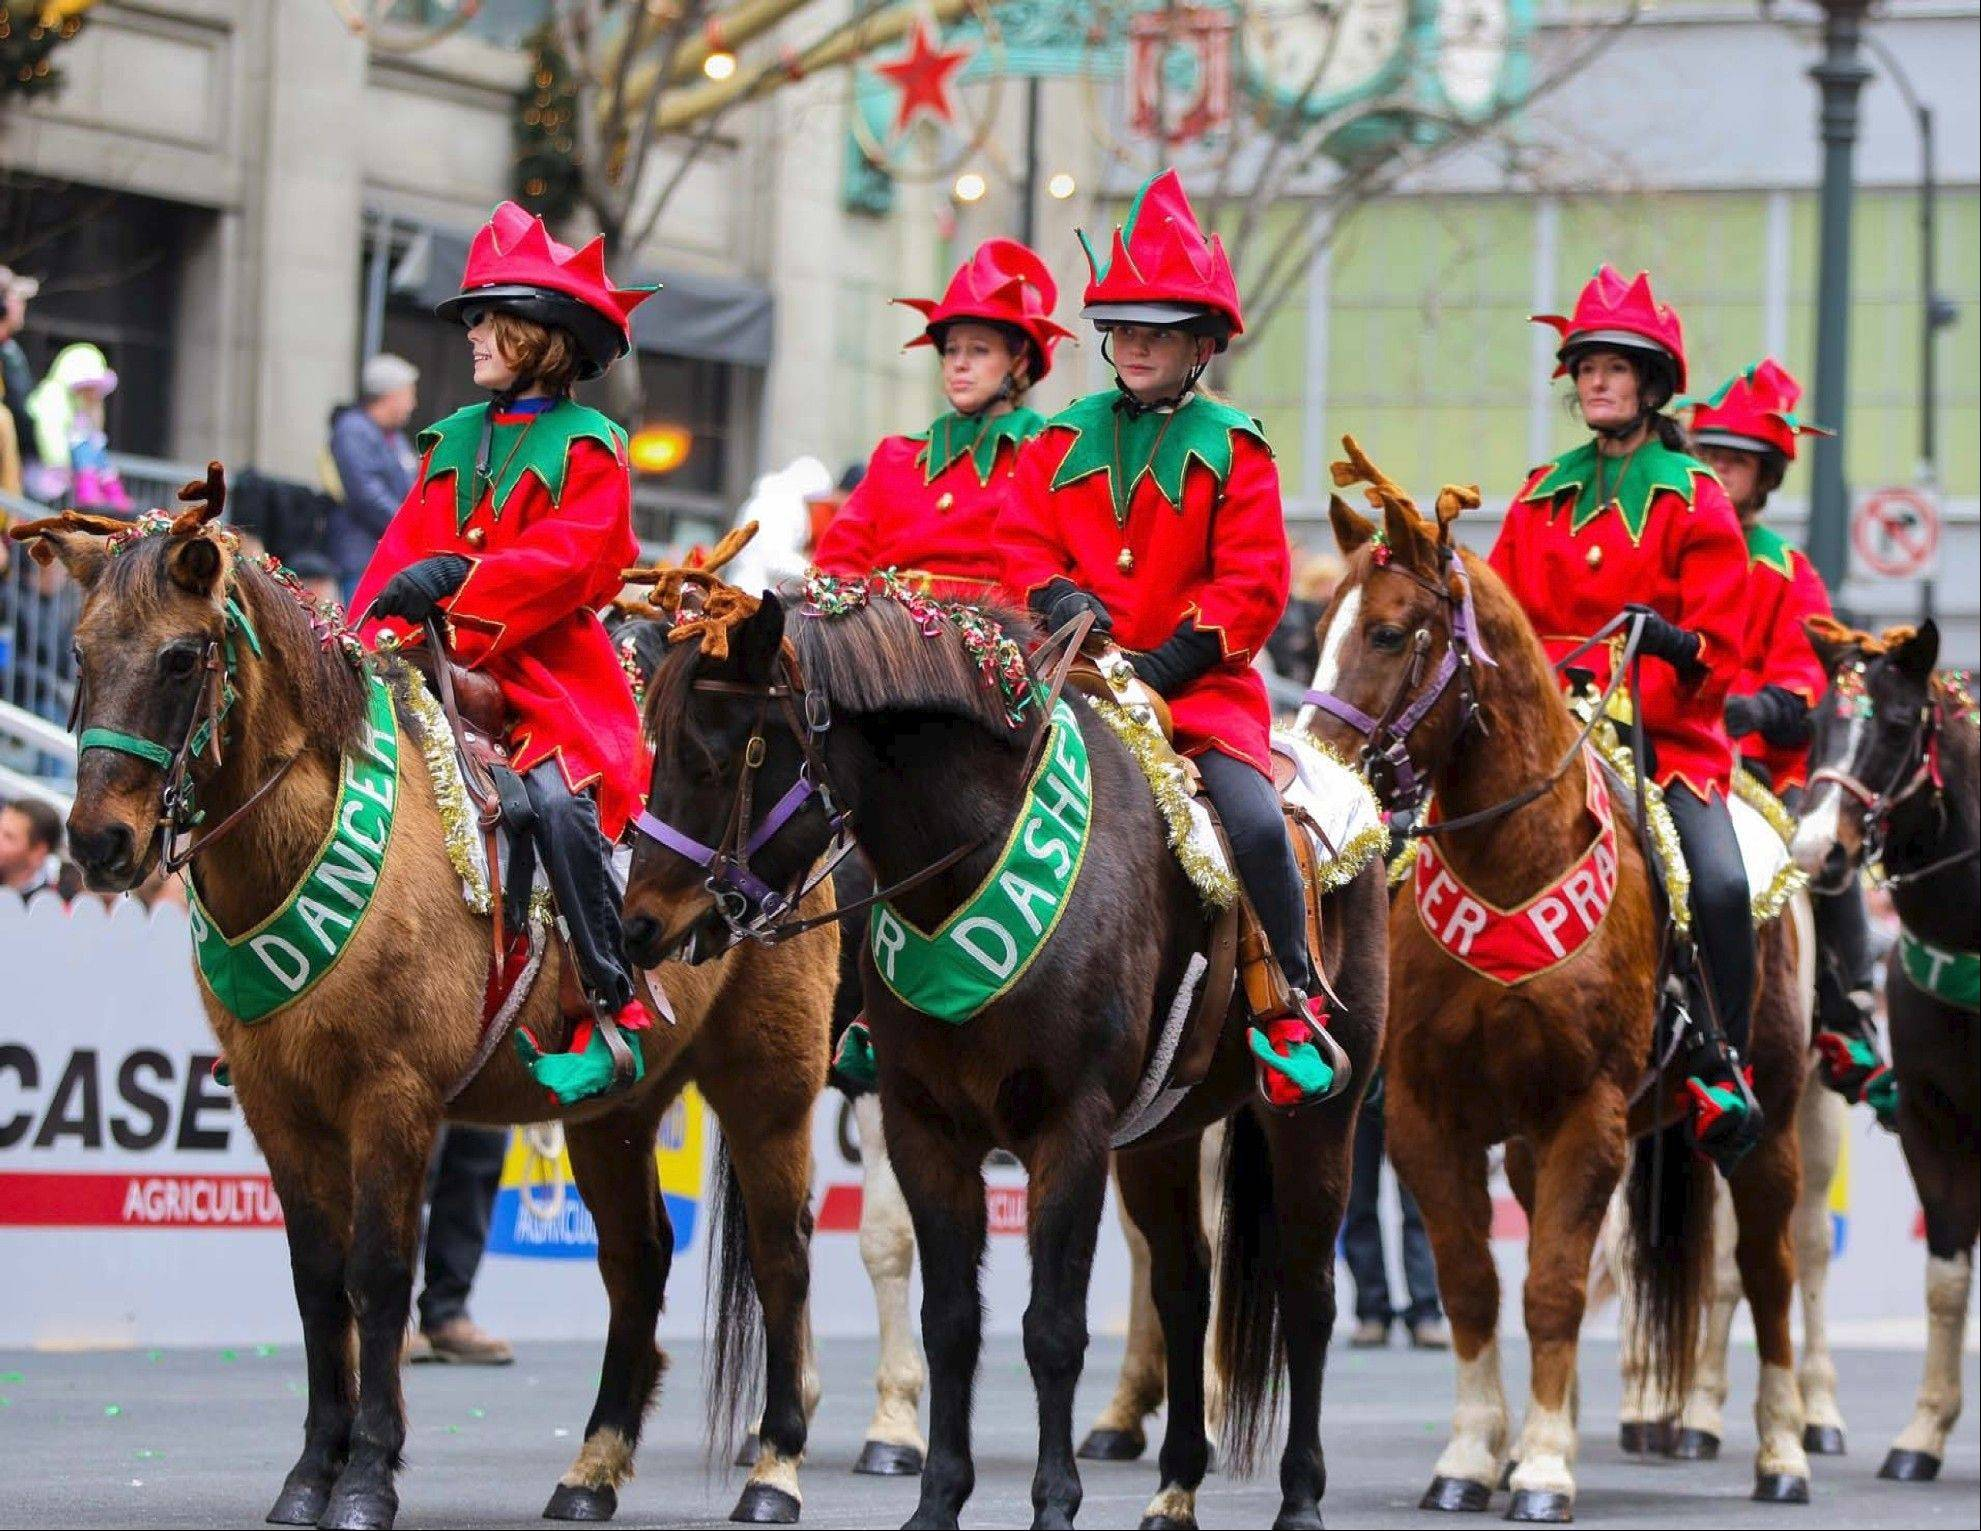 Festive equestrians are decked out in holiday gear for a previous edition of the McDonald's Thanksgiving Day Parade in Chicago.